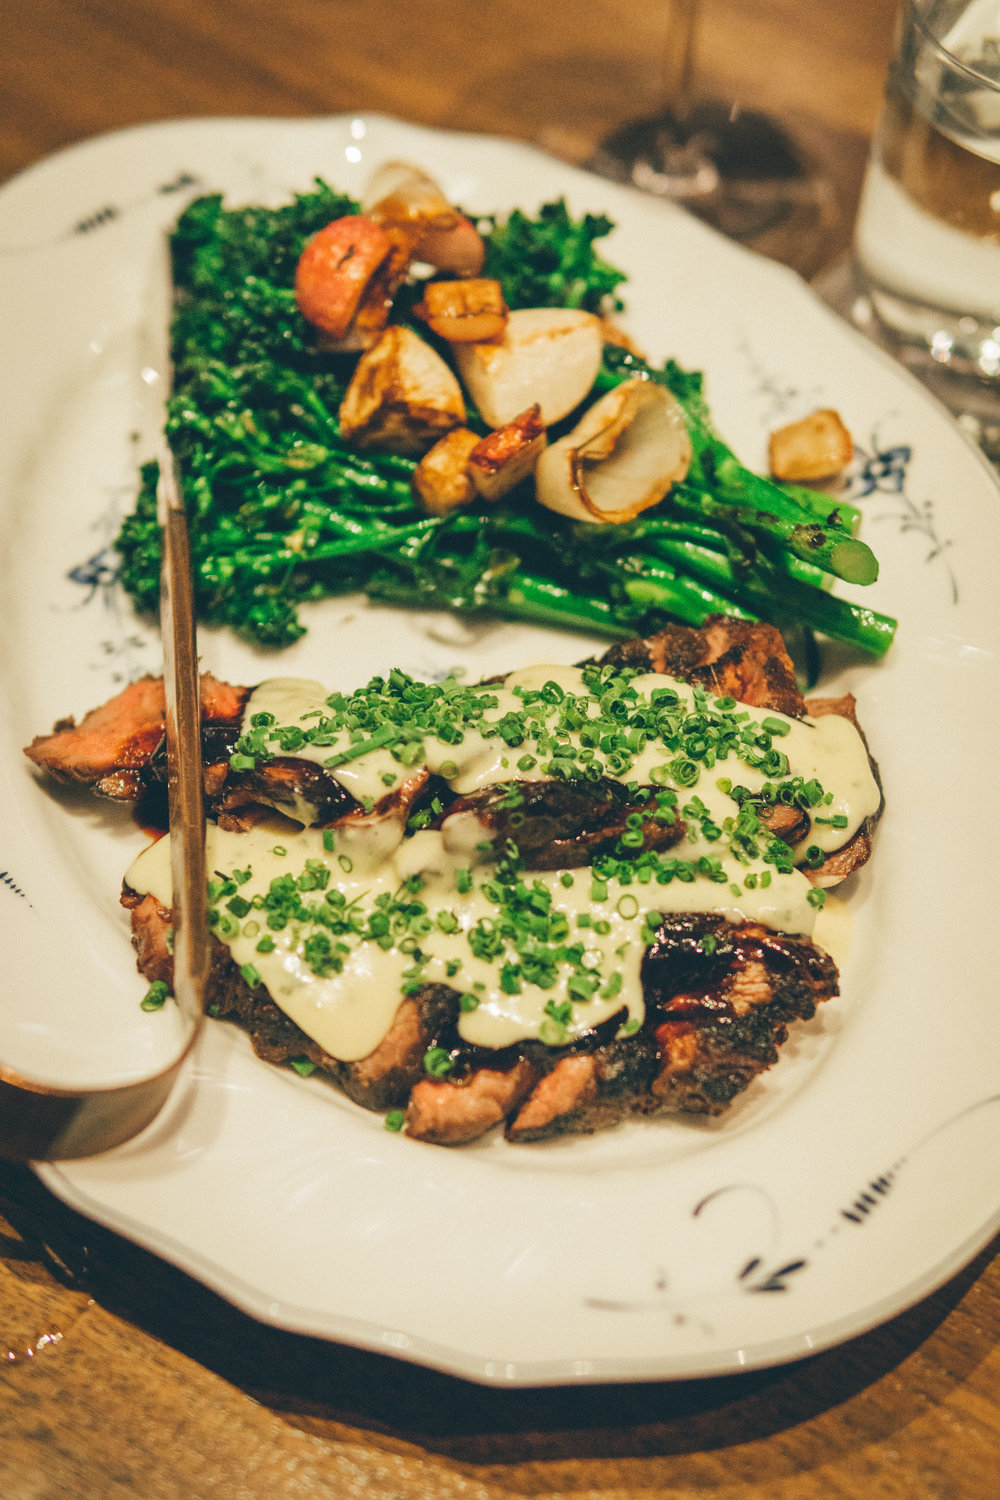 Ribeye-Cap - broccolini, roasted shallots, bearnaise, demi